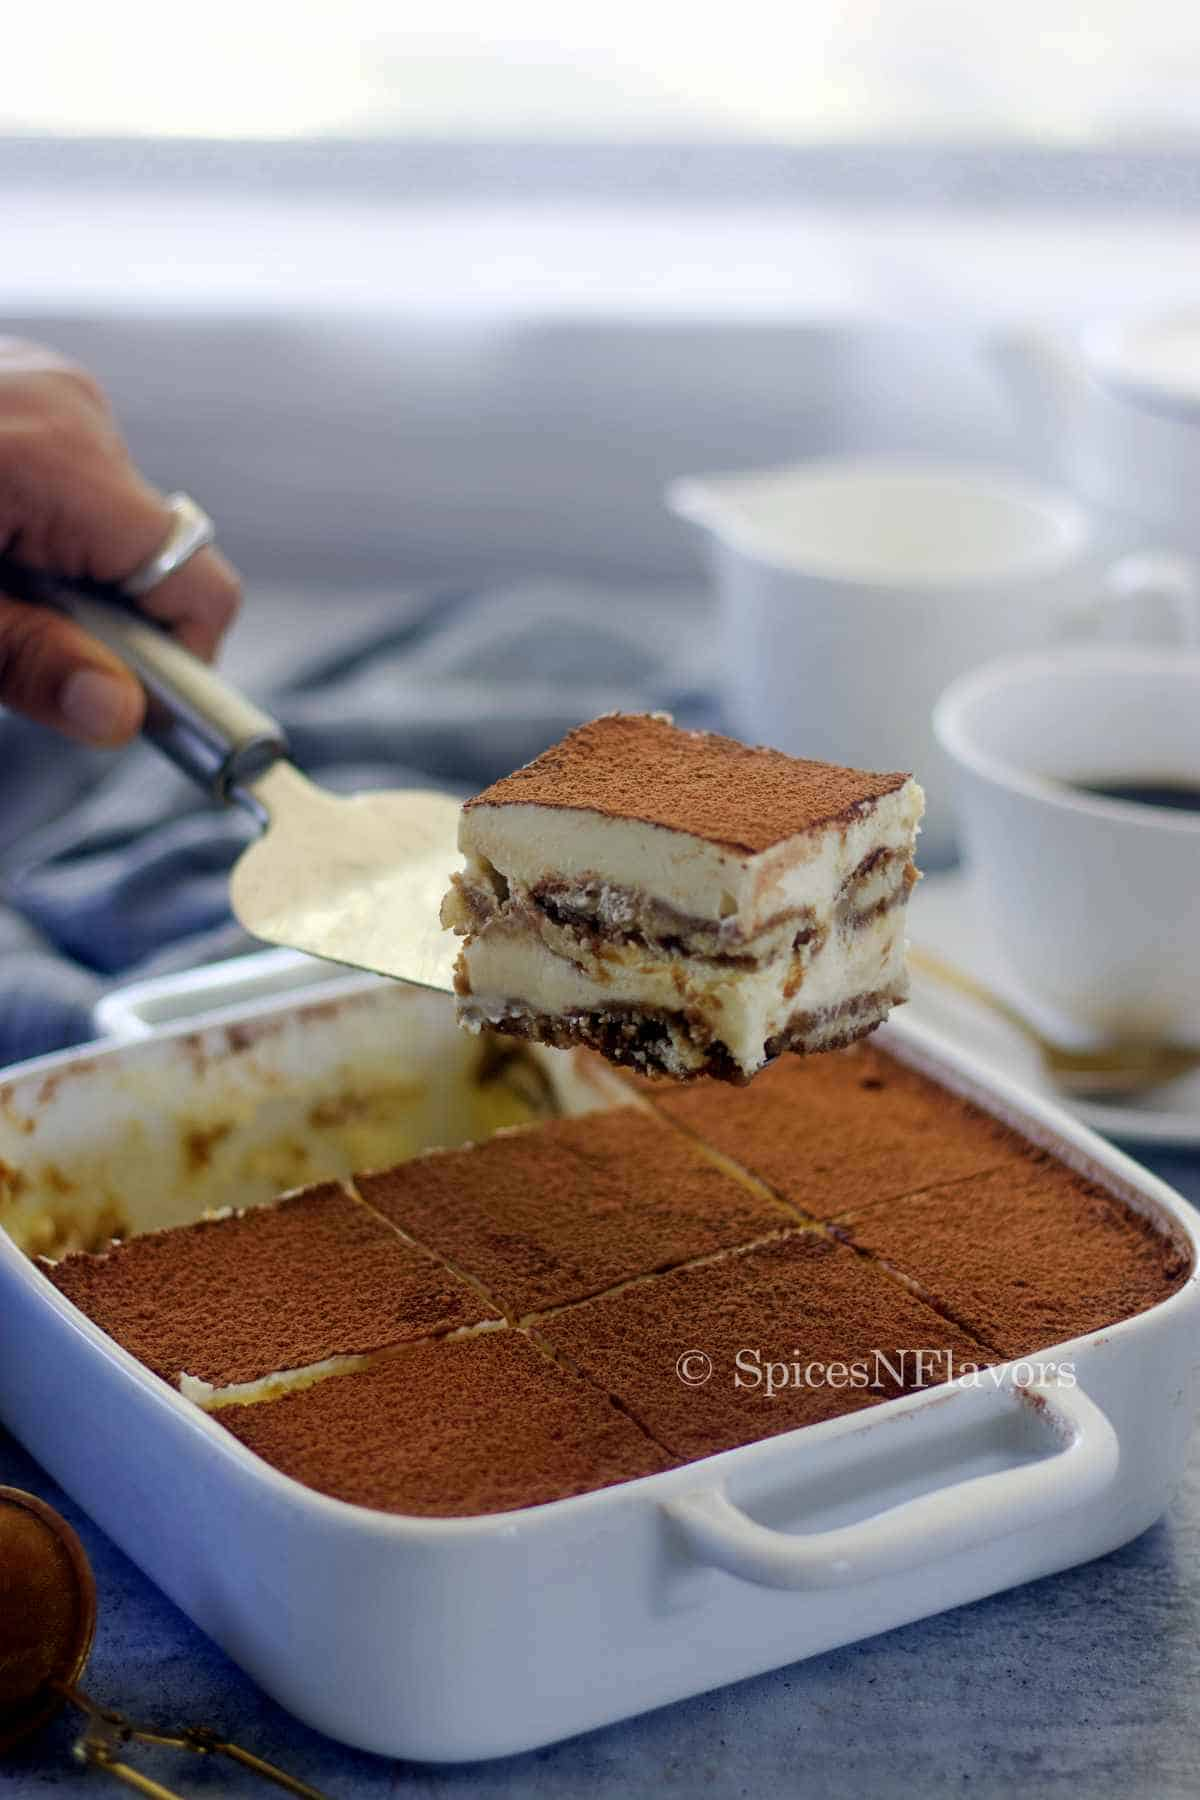 slice of tiramisu held using a serving knife to show the layers within